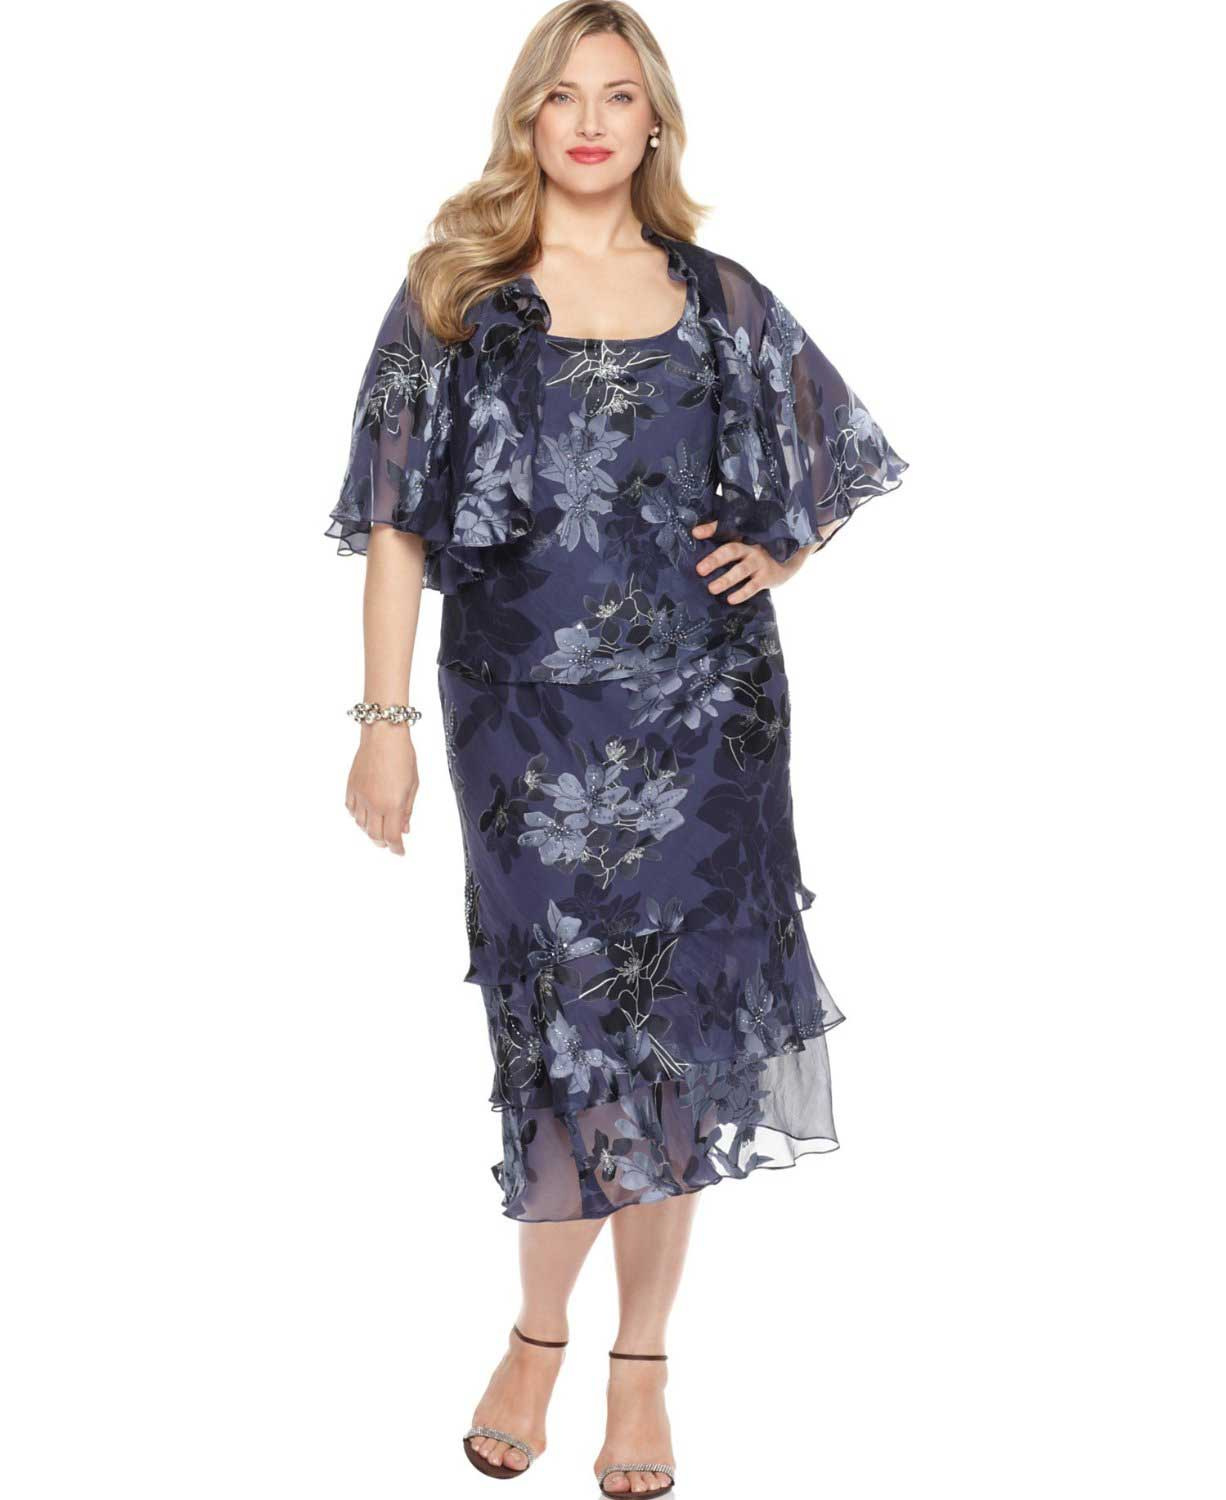 trendy plus size womens clothing | Dresses